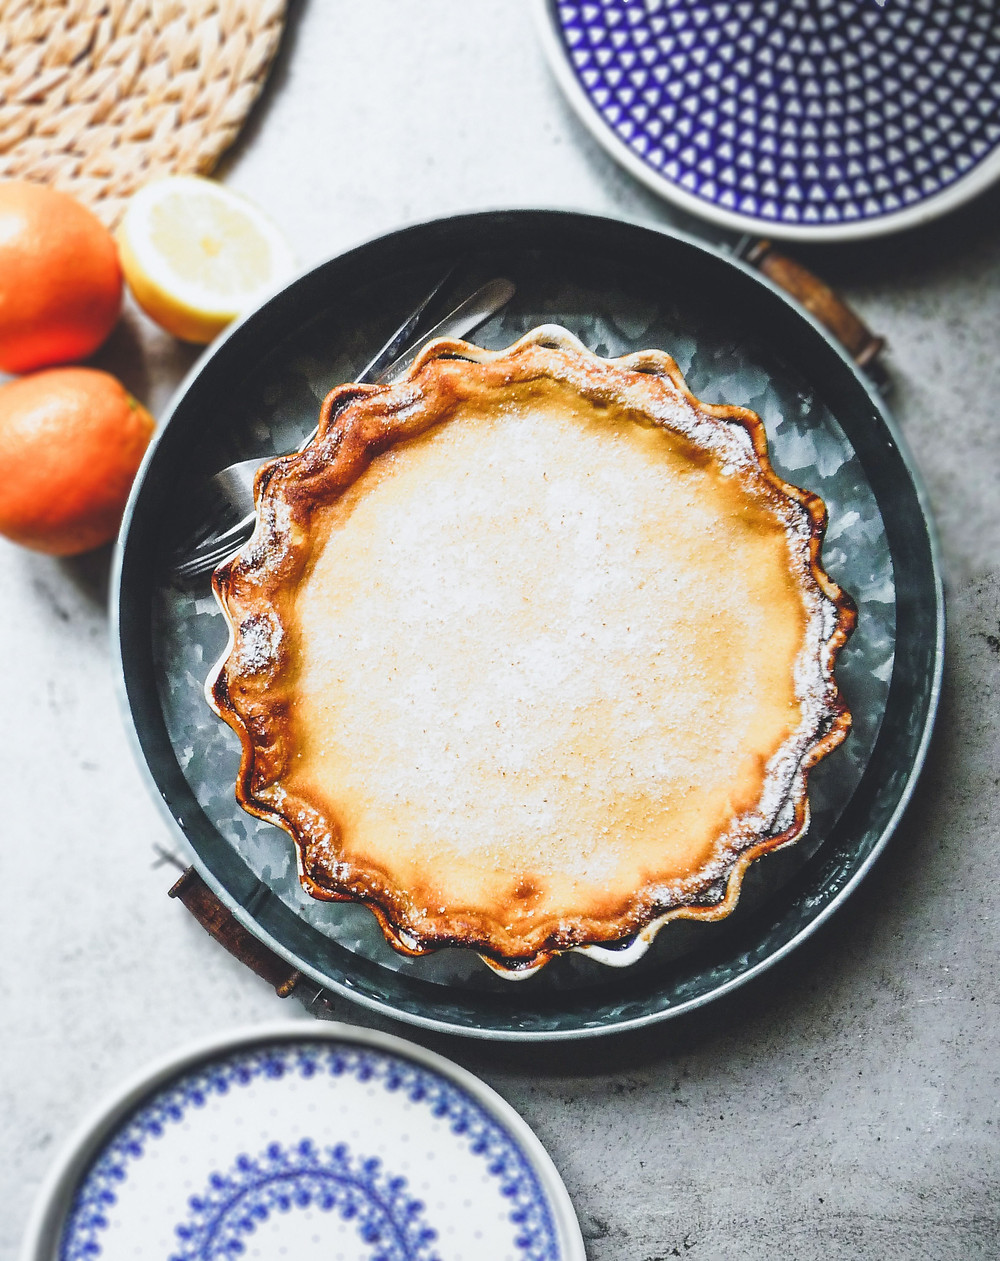 Lemon and Orange Custard Pie